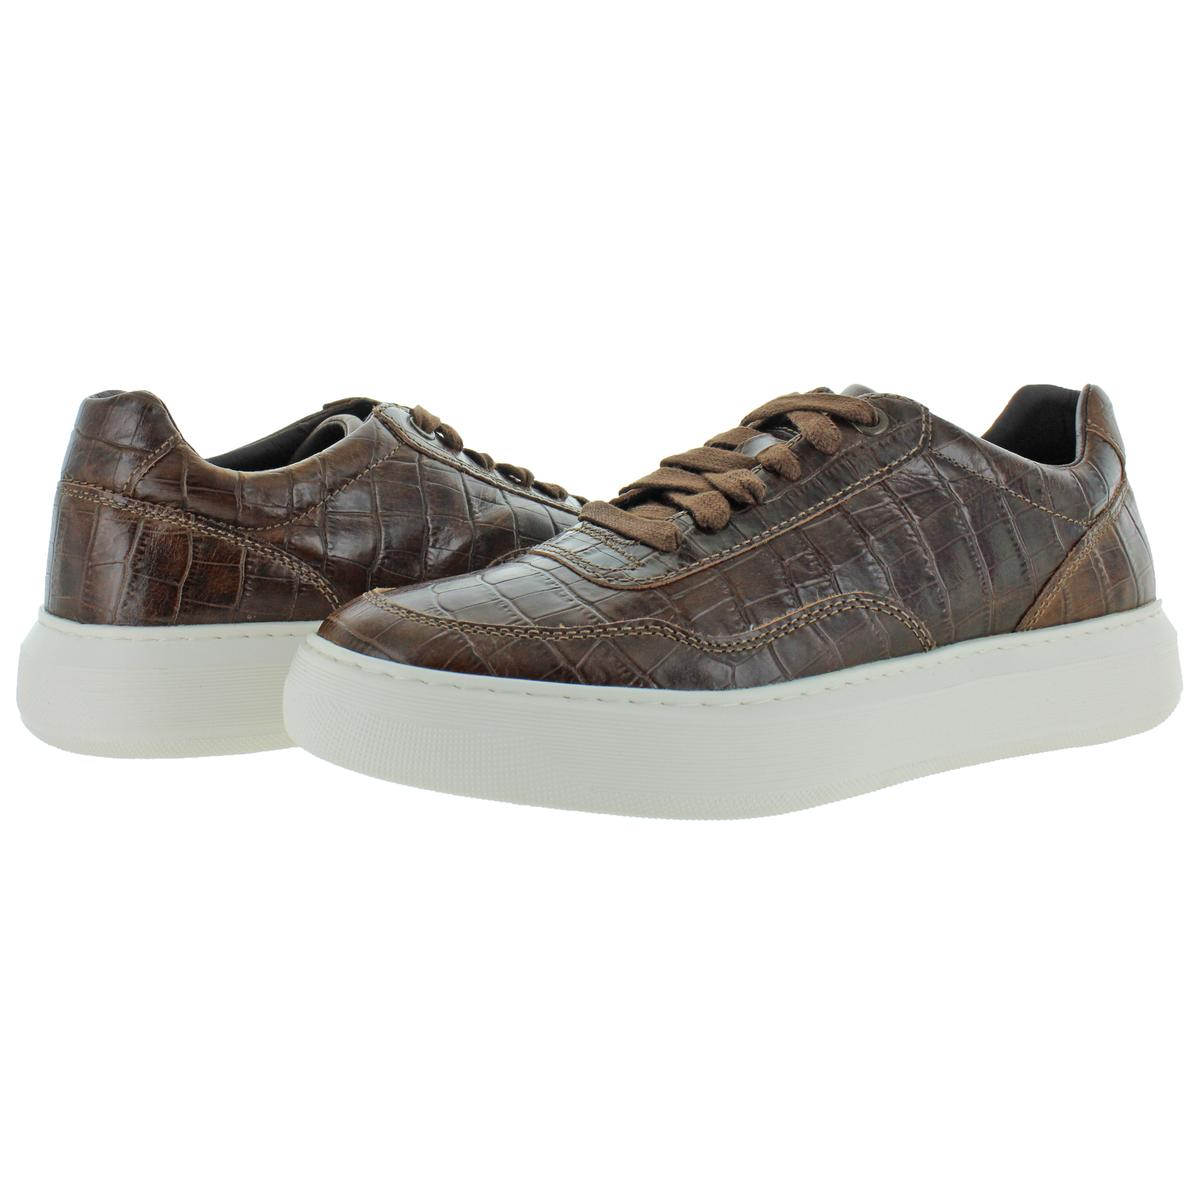 la nieve Canciones infantiles .  Geox Respira Mens Deiven Leather Embossed Fashion Sneakers Shoes BHFO 3931  | eBay